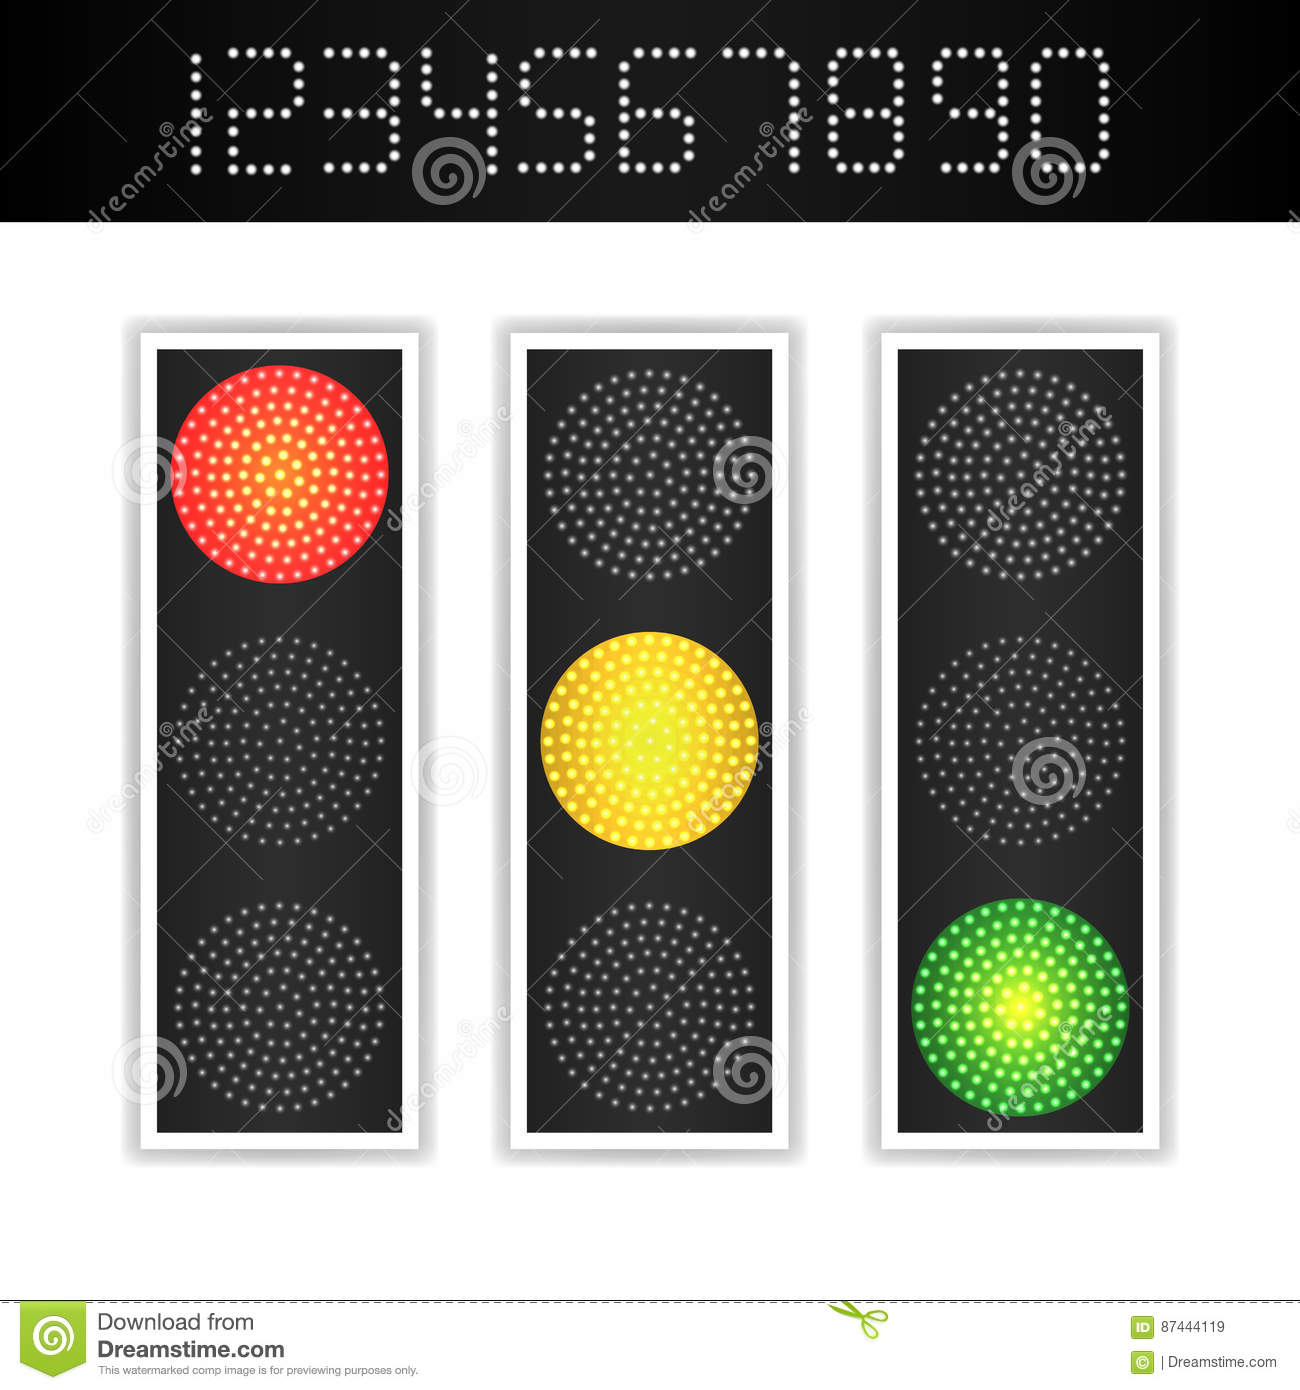 traffic light sequences essay [text] traffic light sequence, cross roads live plc questions and answers.